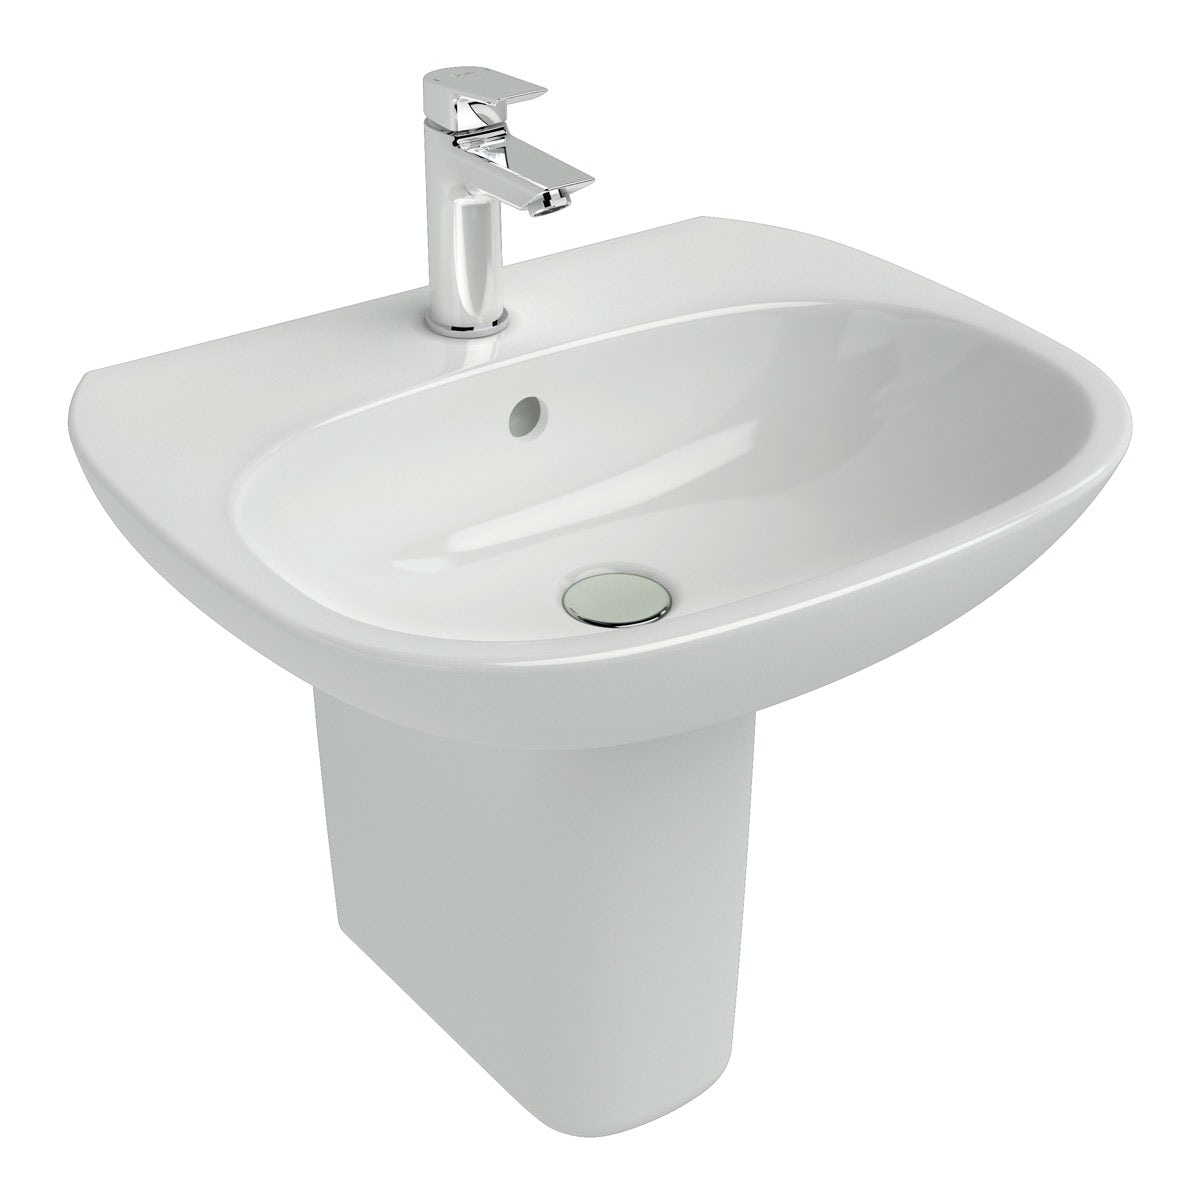 Ideal Standard Tesi 1 tap hole semi pedestal basin